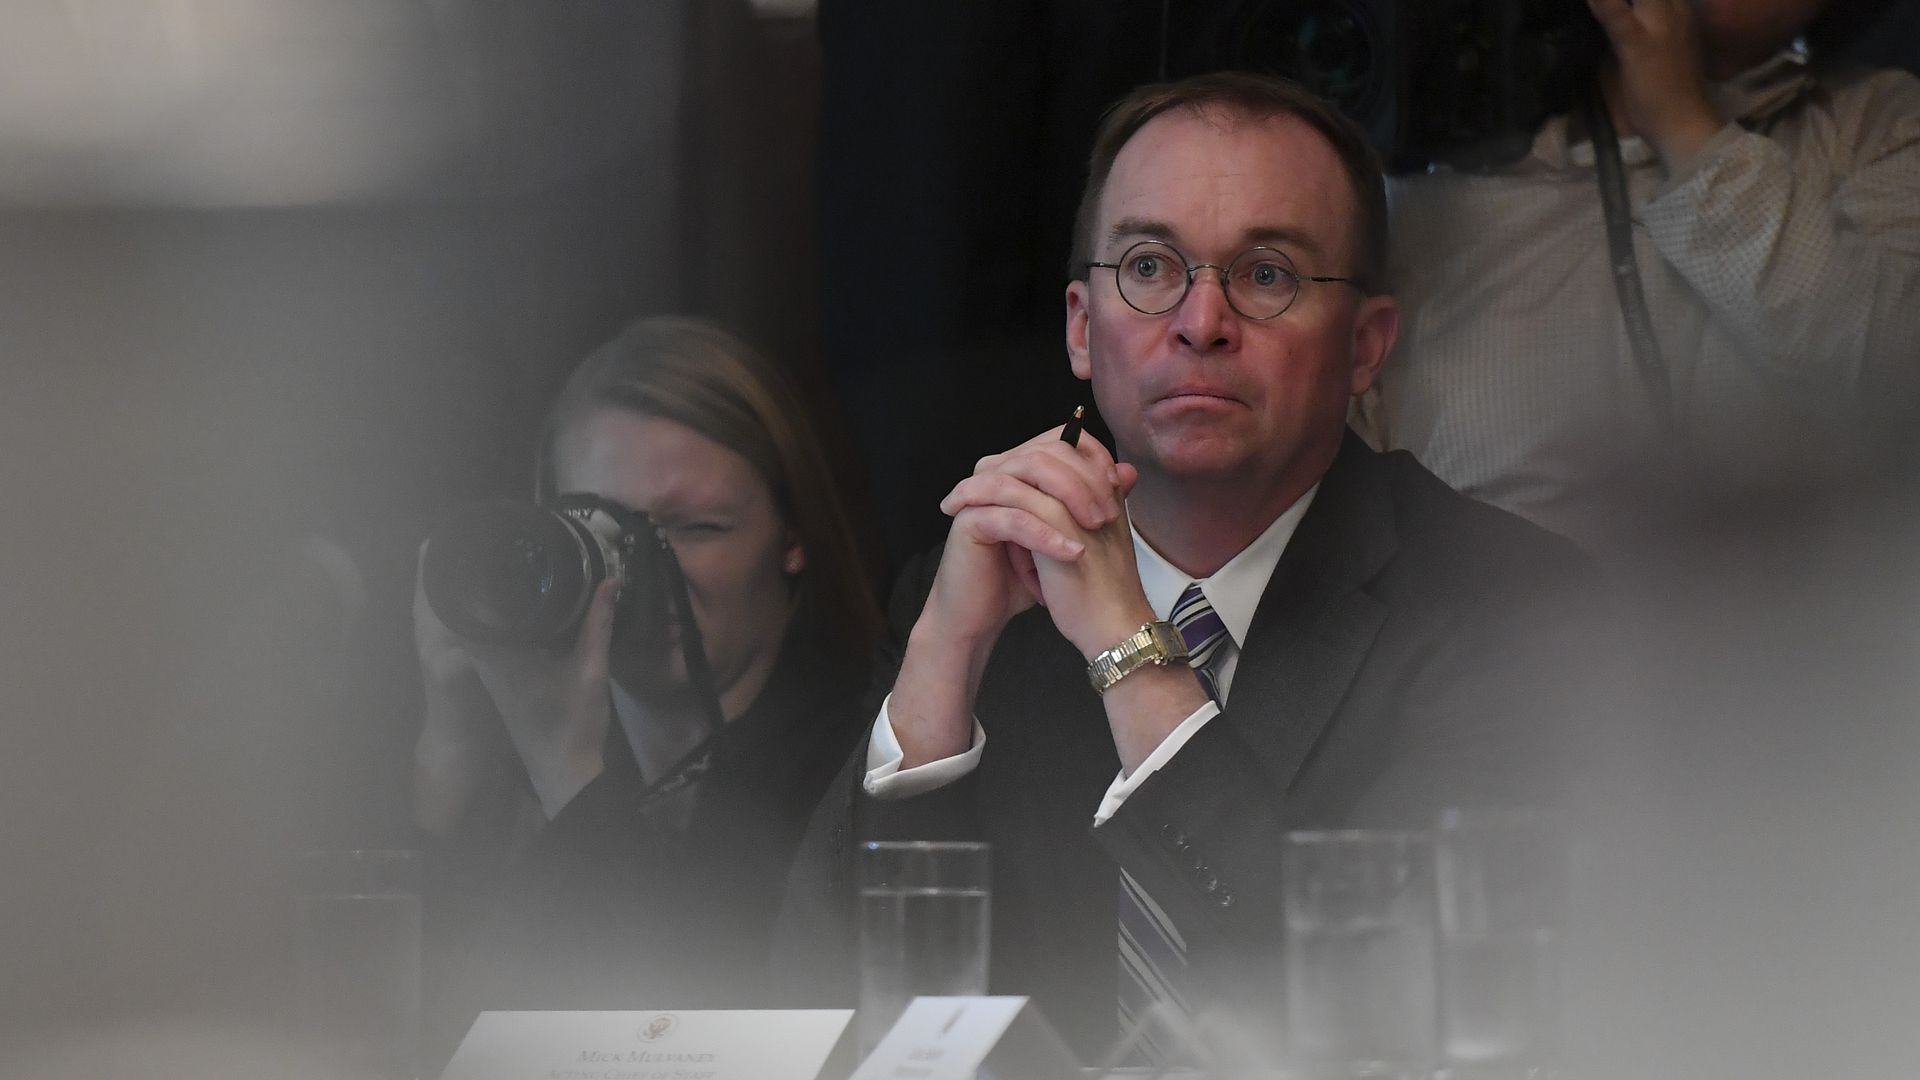 Mulvaney denies Fiona Hill testimony tying him to Ukraine scheme